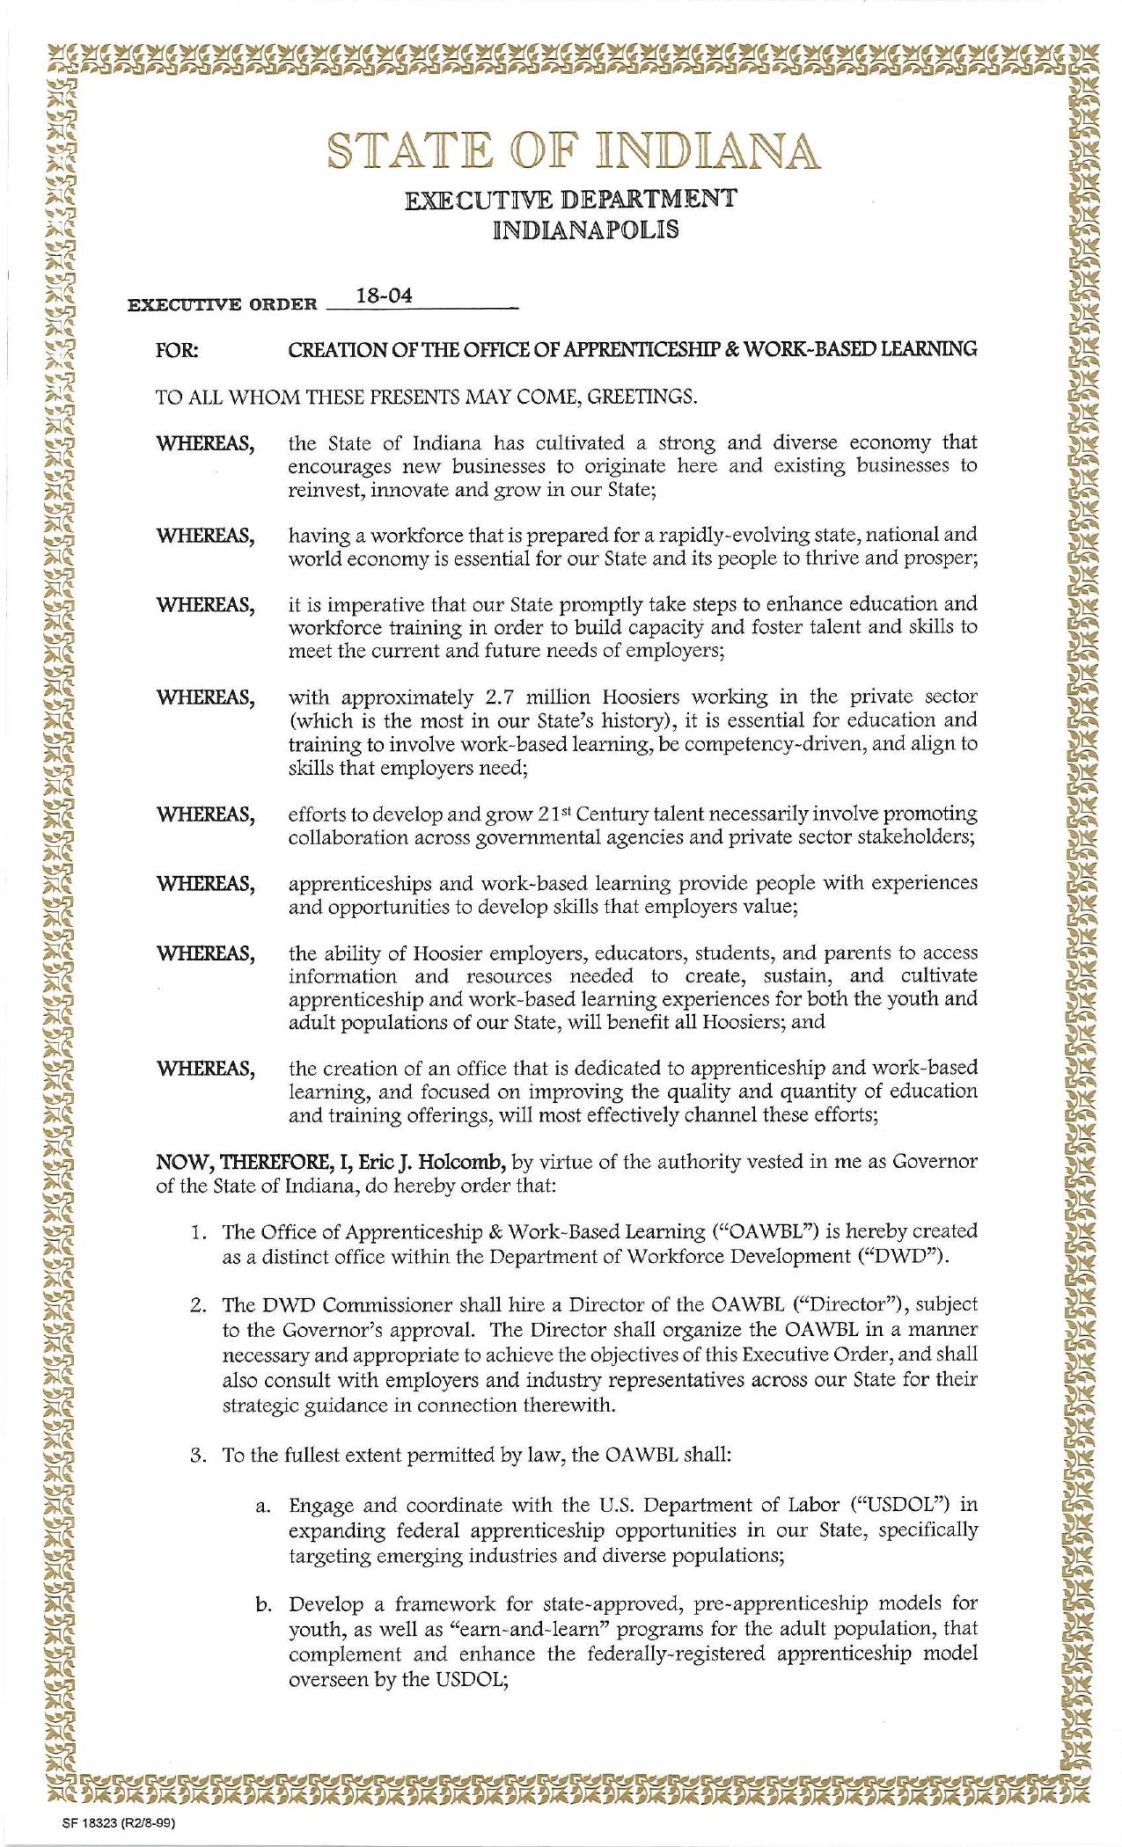 Gov. Eric Holcomb Executive Order 18-04